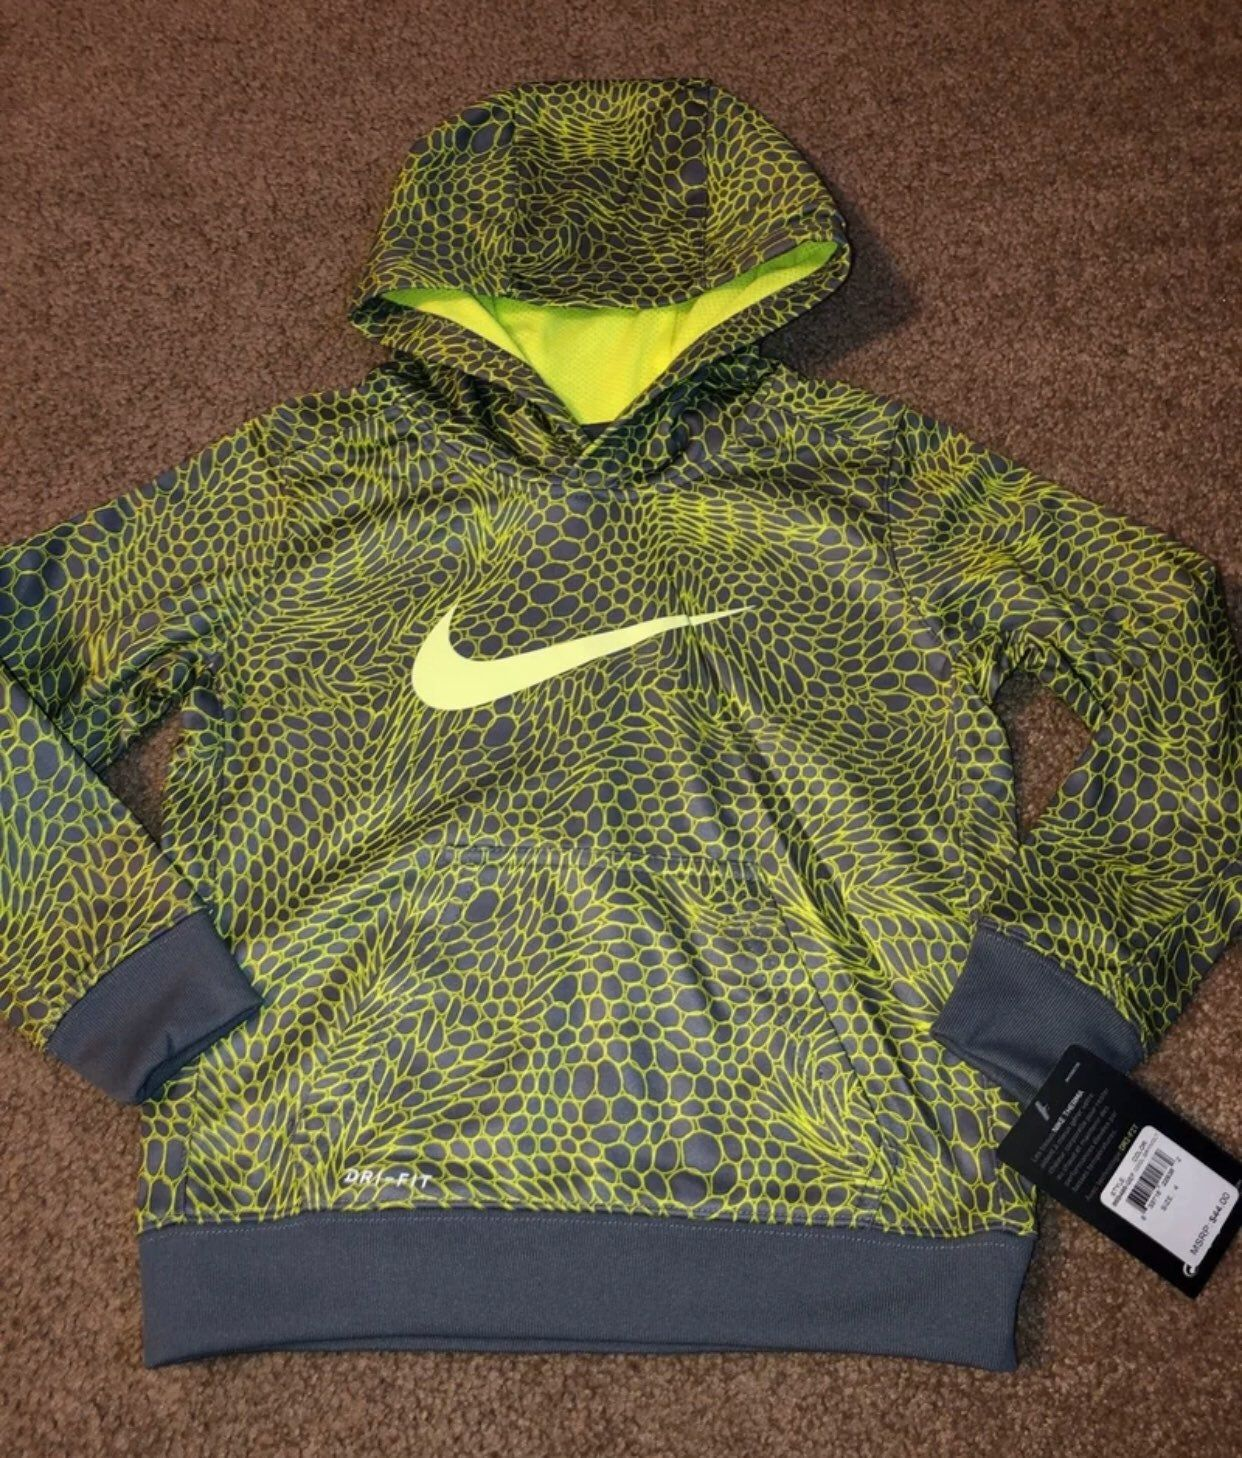 Boys Nike Dri Fit Hooded Sweatshirt Size 4 Color Is Cool Grey Volt New With Tags Any Questions Please Ask Comes Hooded Sweatshirts Nike Hoodie Boys Nike [ 1458 x 1242 Pixel ]